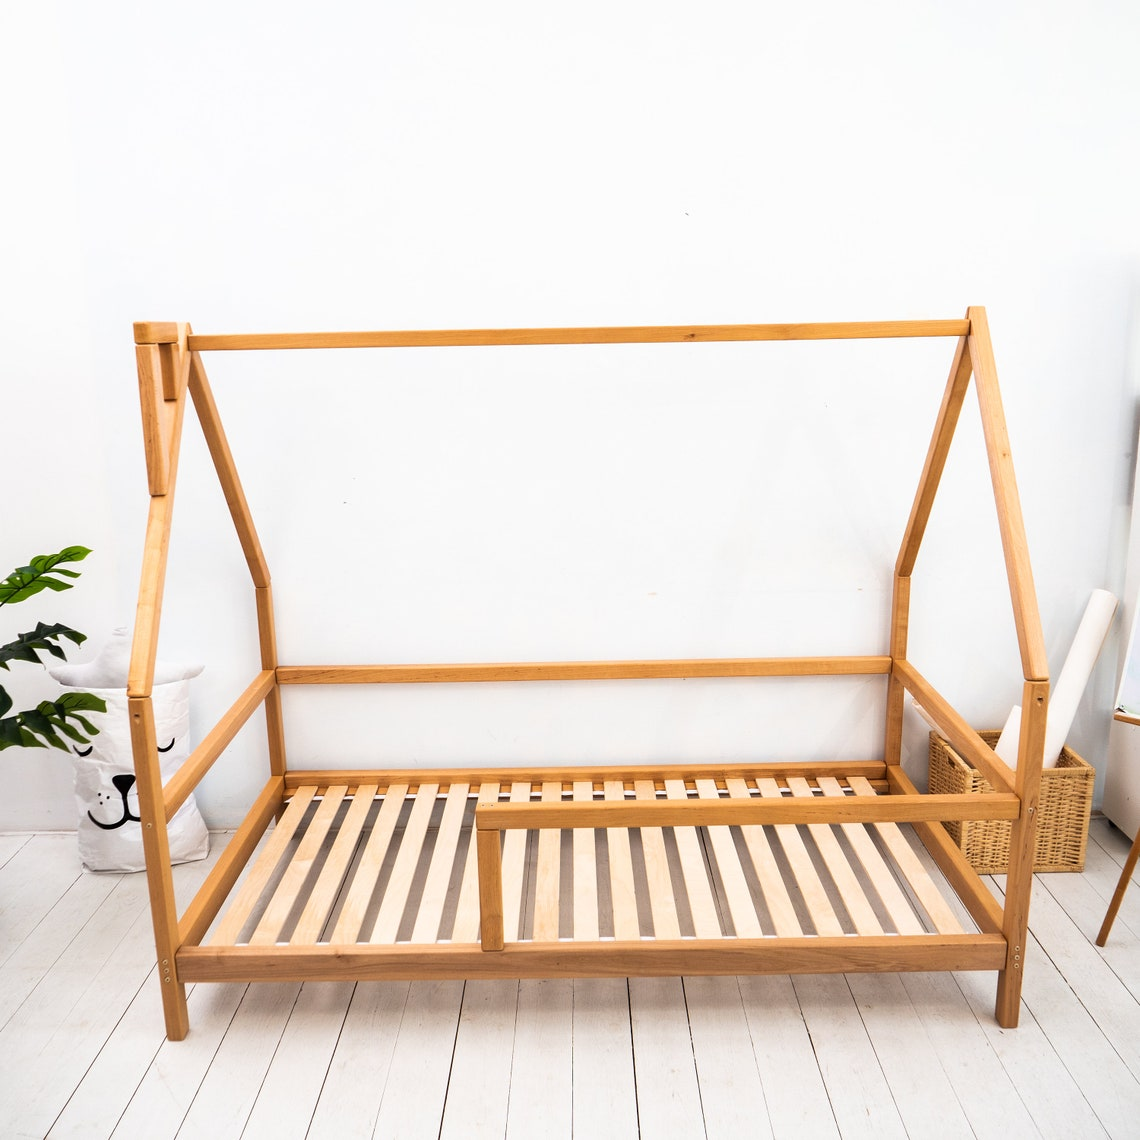 Montessori Toddler Bedroom Furniture Montessori bed House bed full Shed bed Twin bed frame Farmhouse House frame Playhouse Unique bed kids